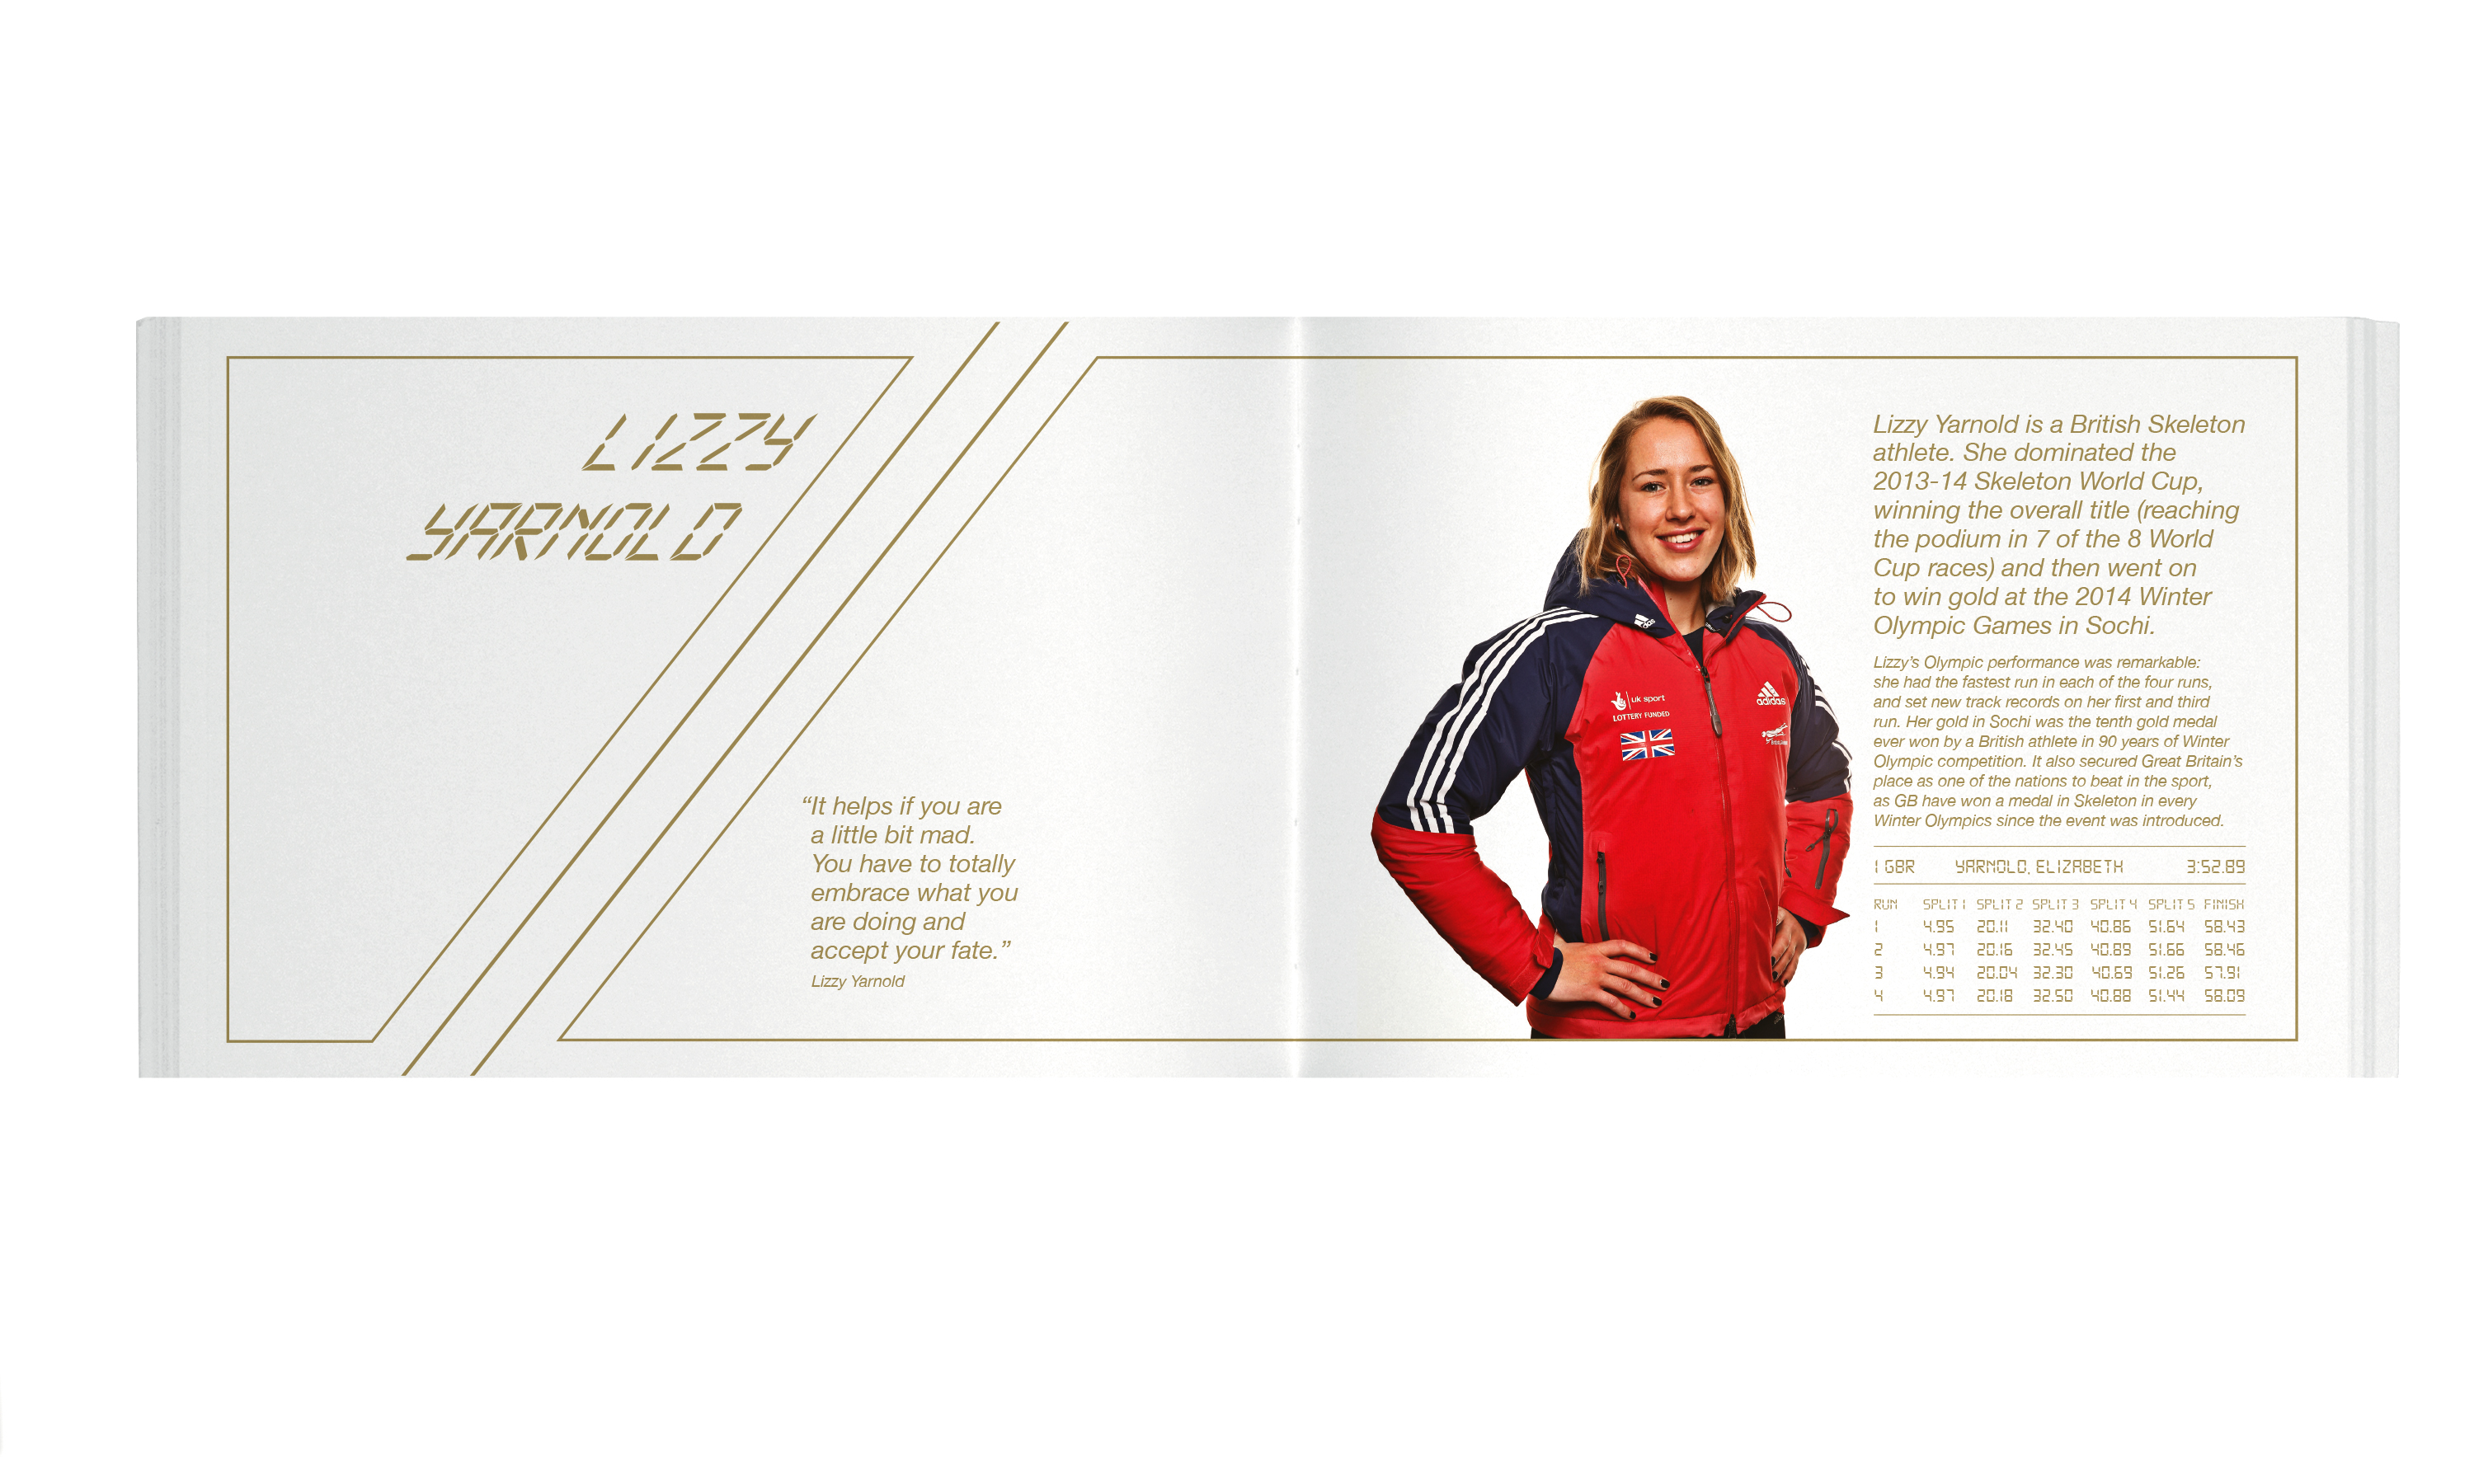 The opening spread of the Lizzy Yarnold story by Neon Design & Branding Consultancy www.neon-creative.com